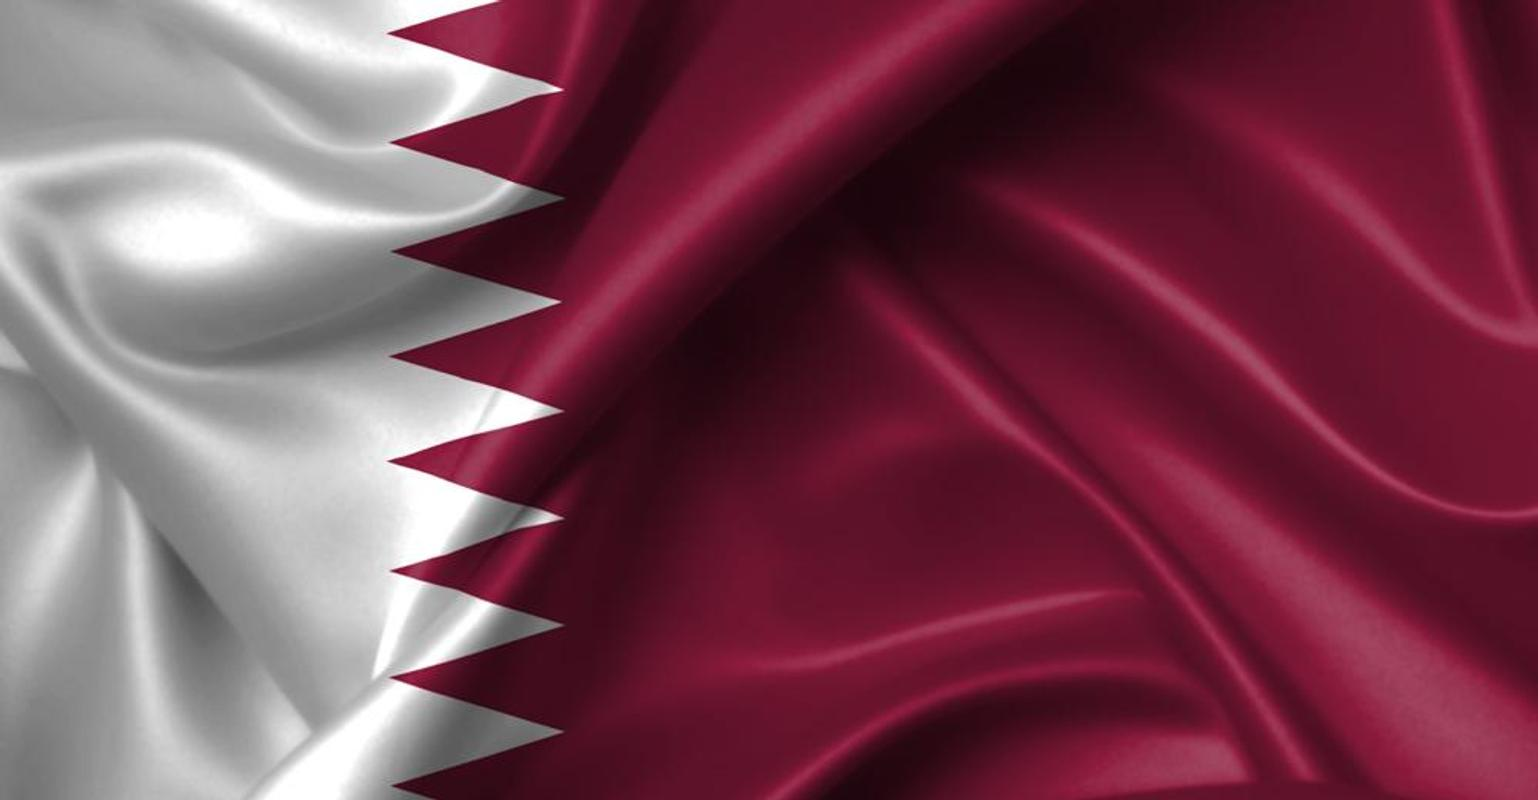 Free Download Qatar Flag Wallpapers For Android Apk Download 1538x800 For Your Desktop Mobile Tablet Explore 17 Qatar Flag Wallpapers Qatar Flag Wallpapers Flag Background Wallpaper Free Flag Wallpaper